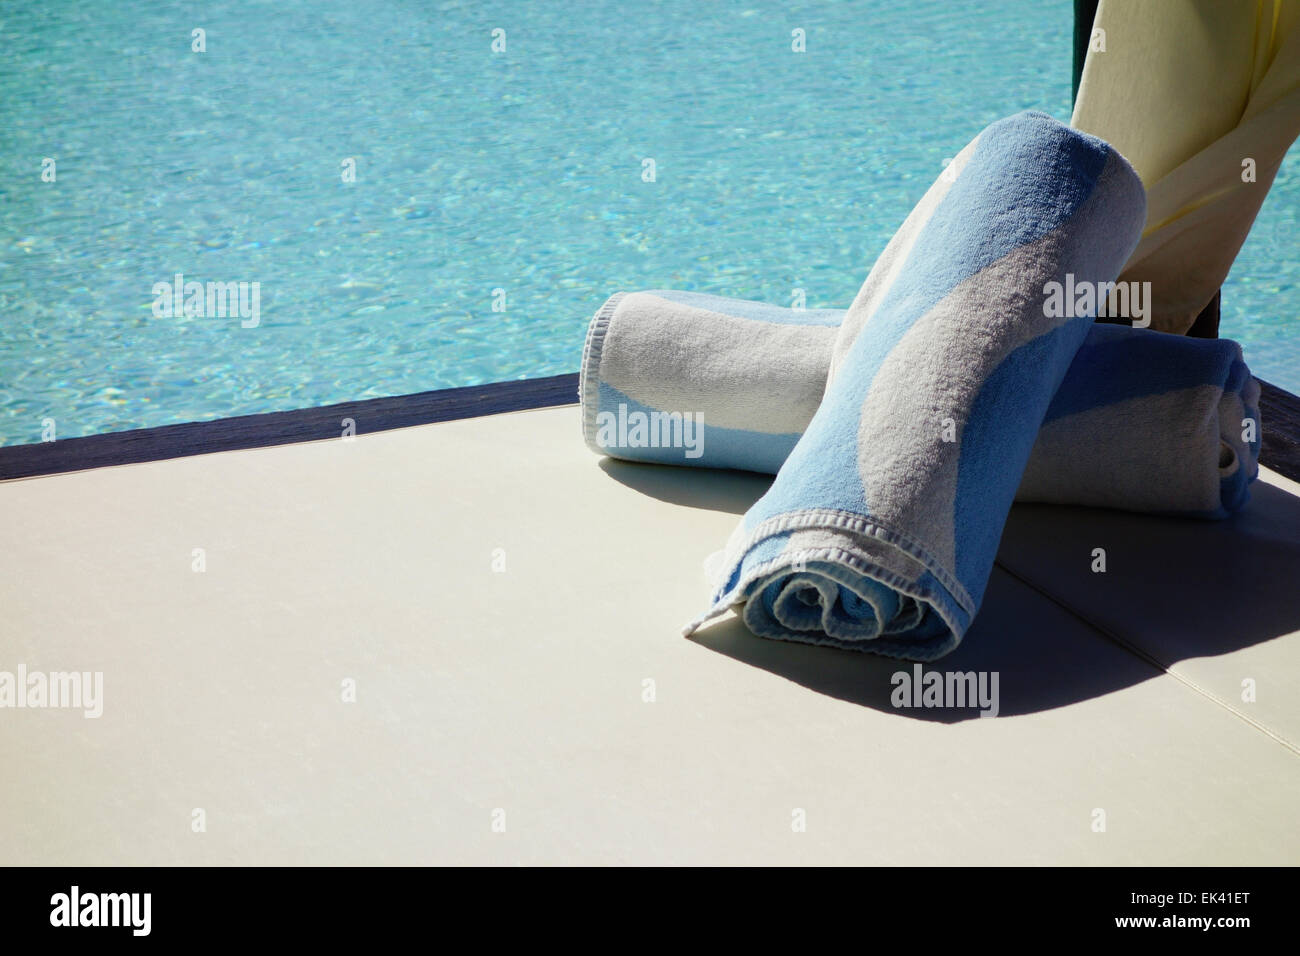 Pool Side Luxury Holidays Stock Photo